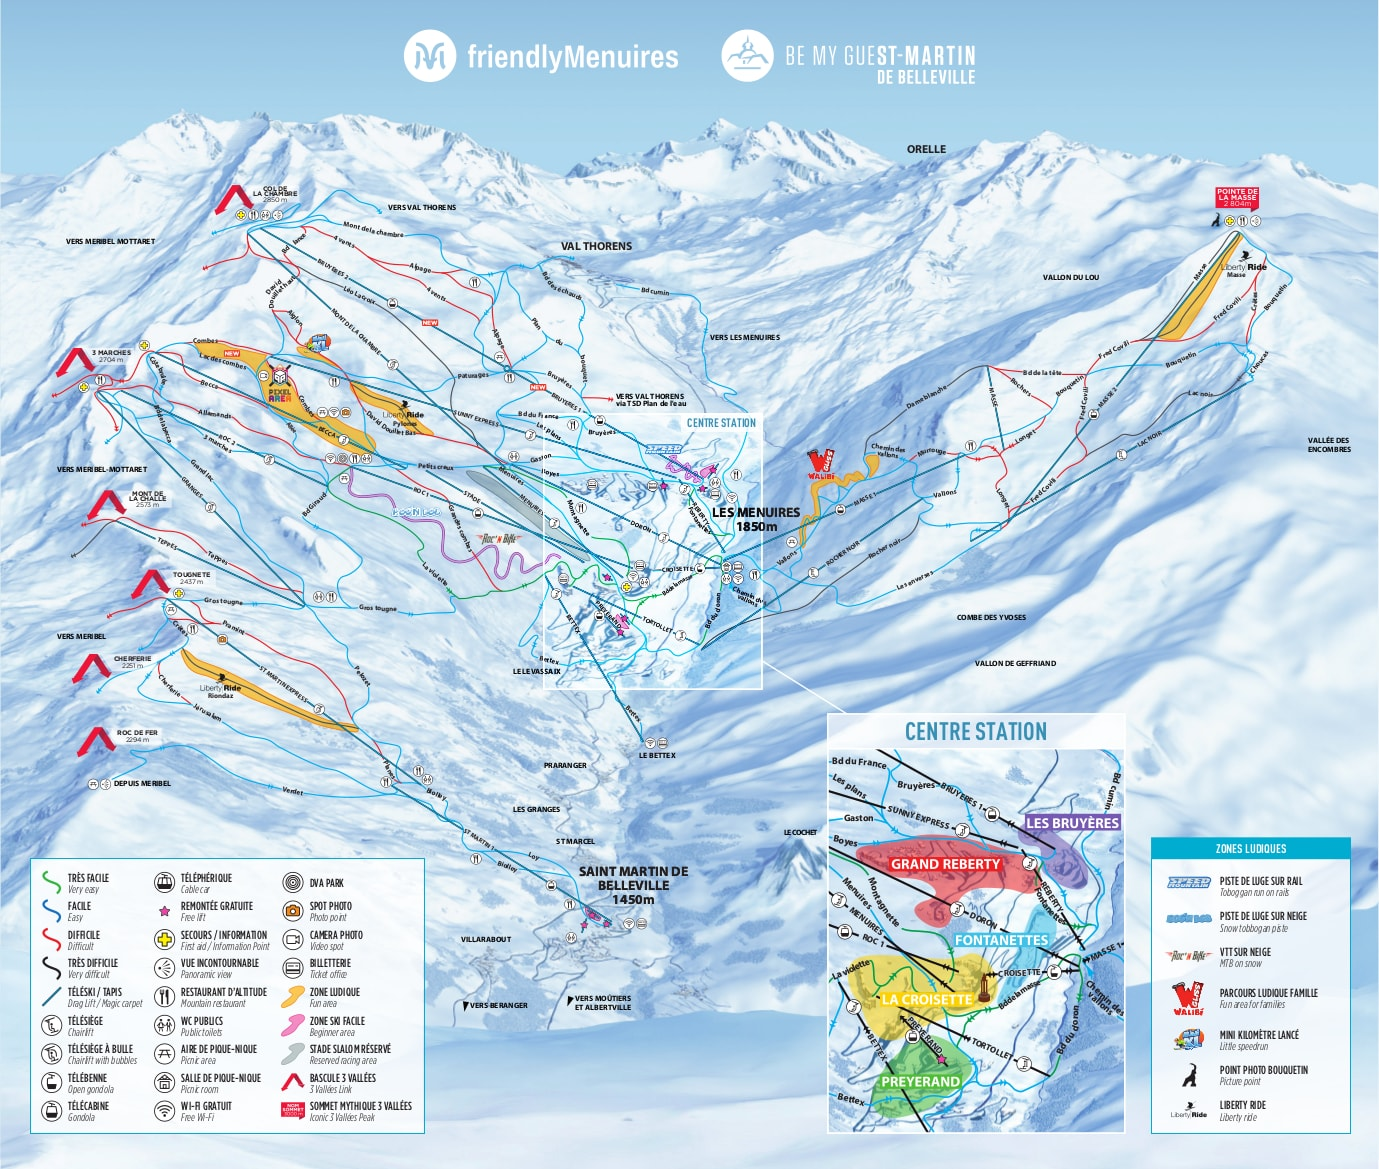 St Martin On World Map.Saint Martin De Belleville Piste Map